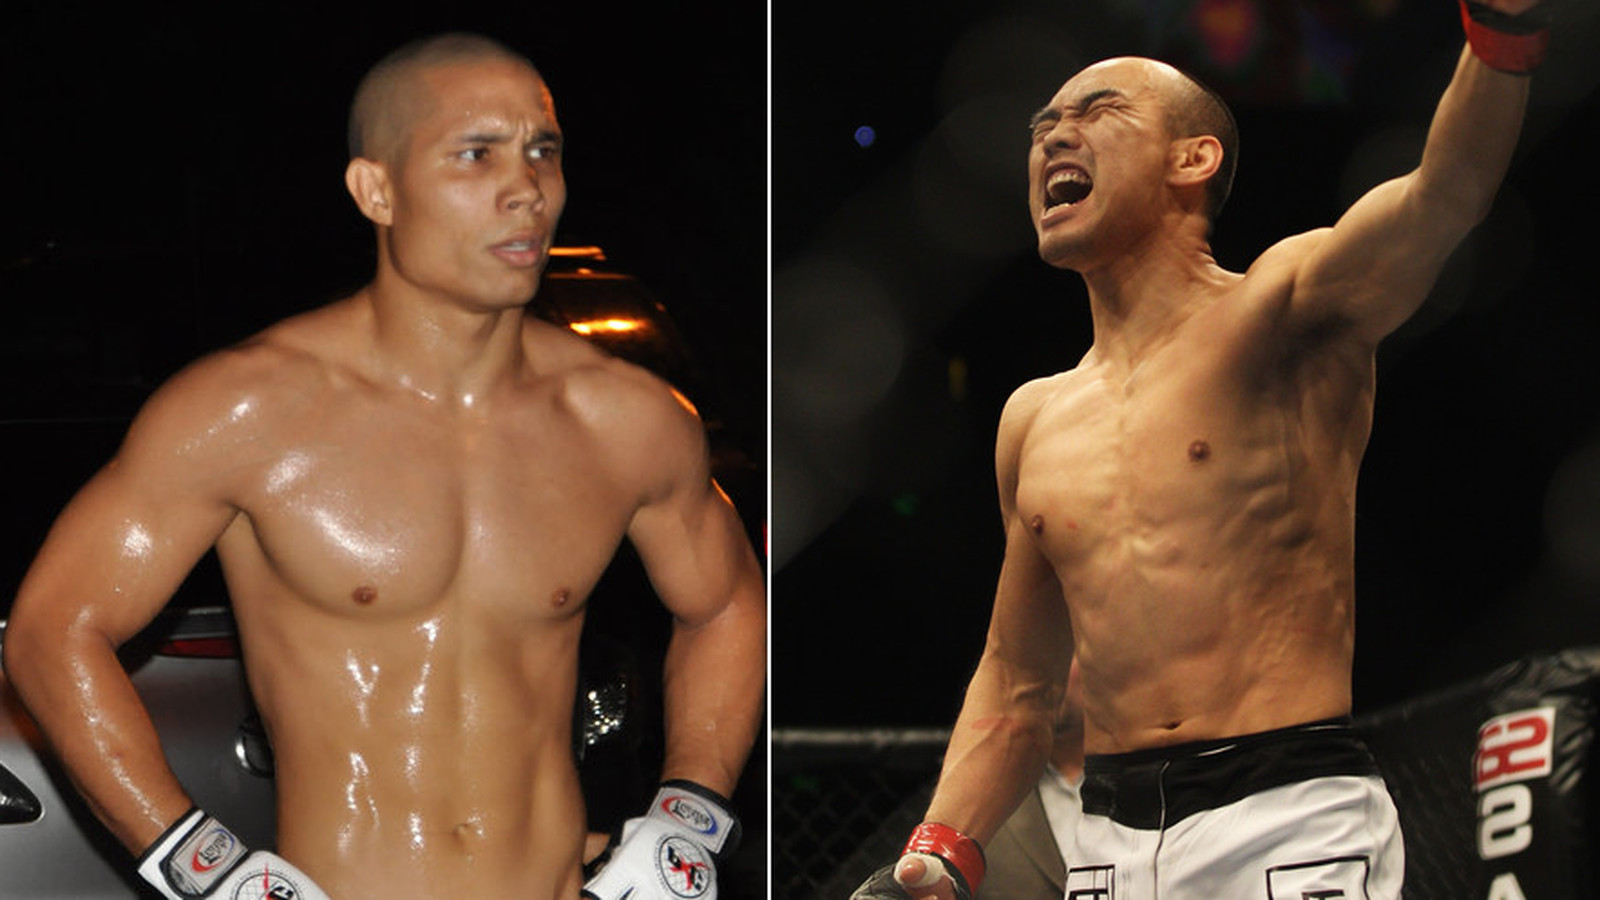 UFC 144 Results: Issei Tamura Knocks Out Tiequan Zhang